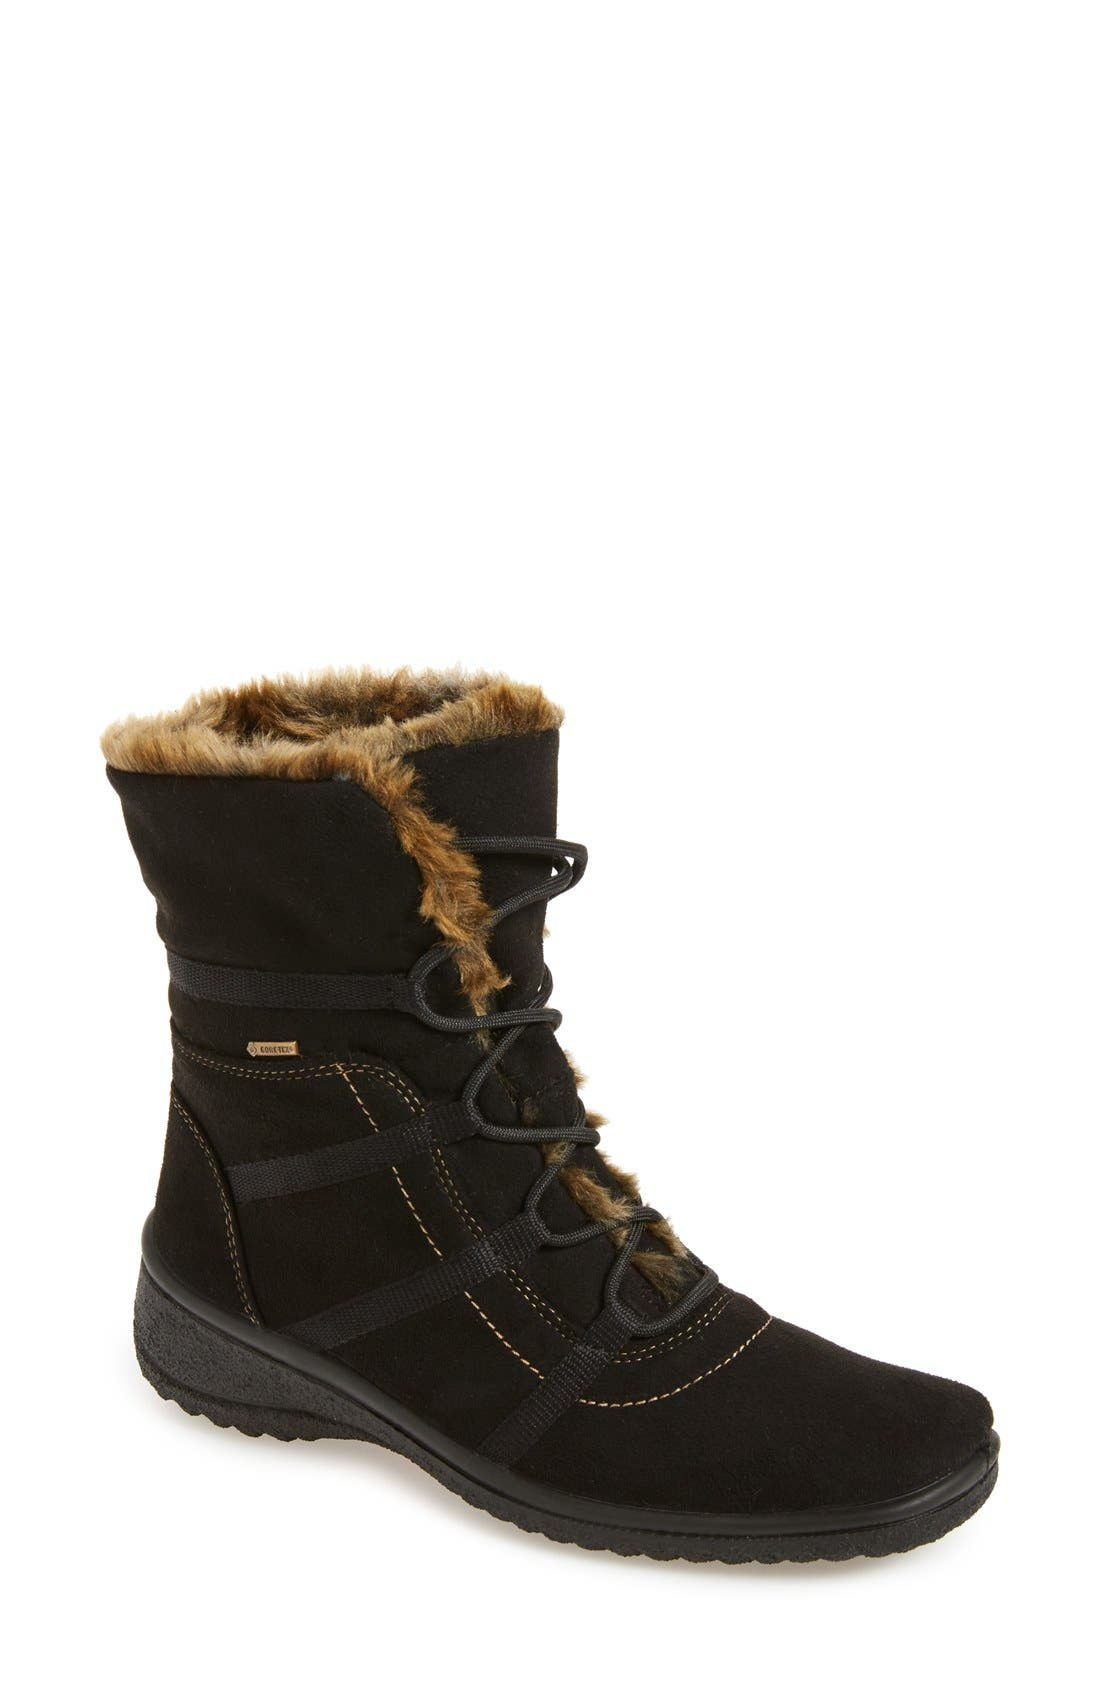 'Magaly' Waterproof Gore-Tex<sup>®</sup> Faux Fur Boot,                         Main,                         color, BLACK FABRIC